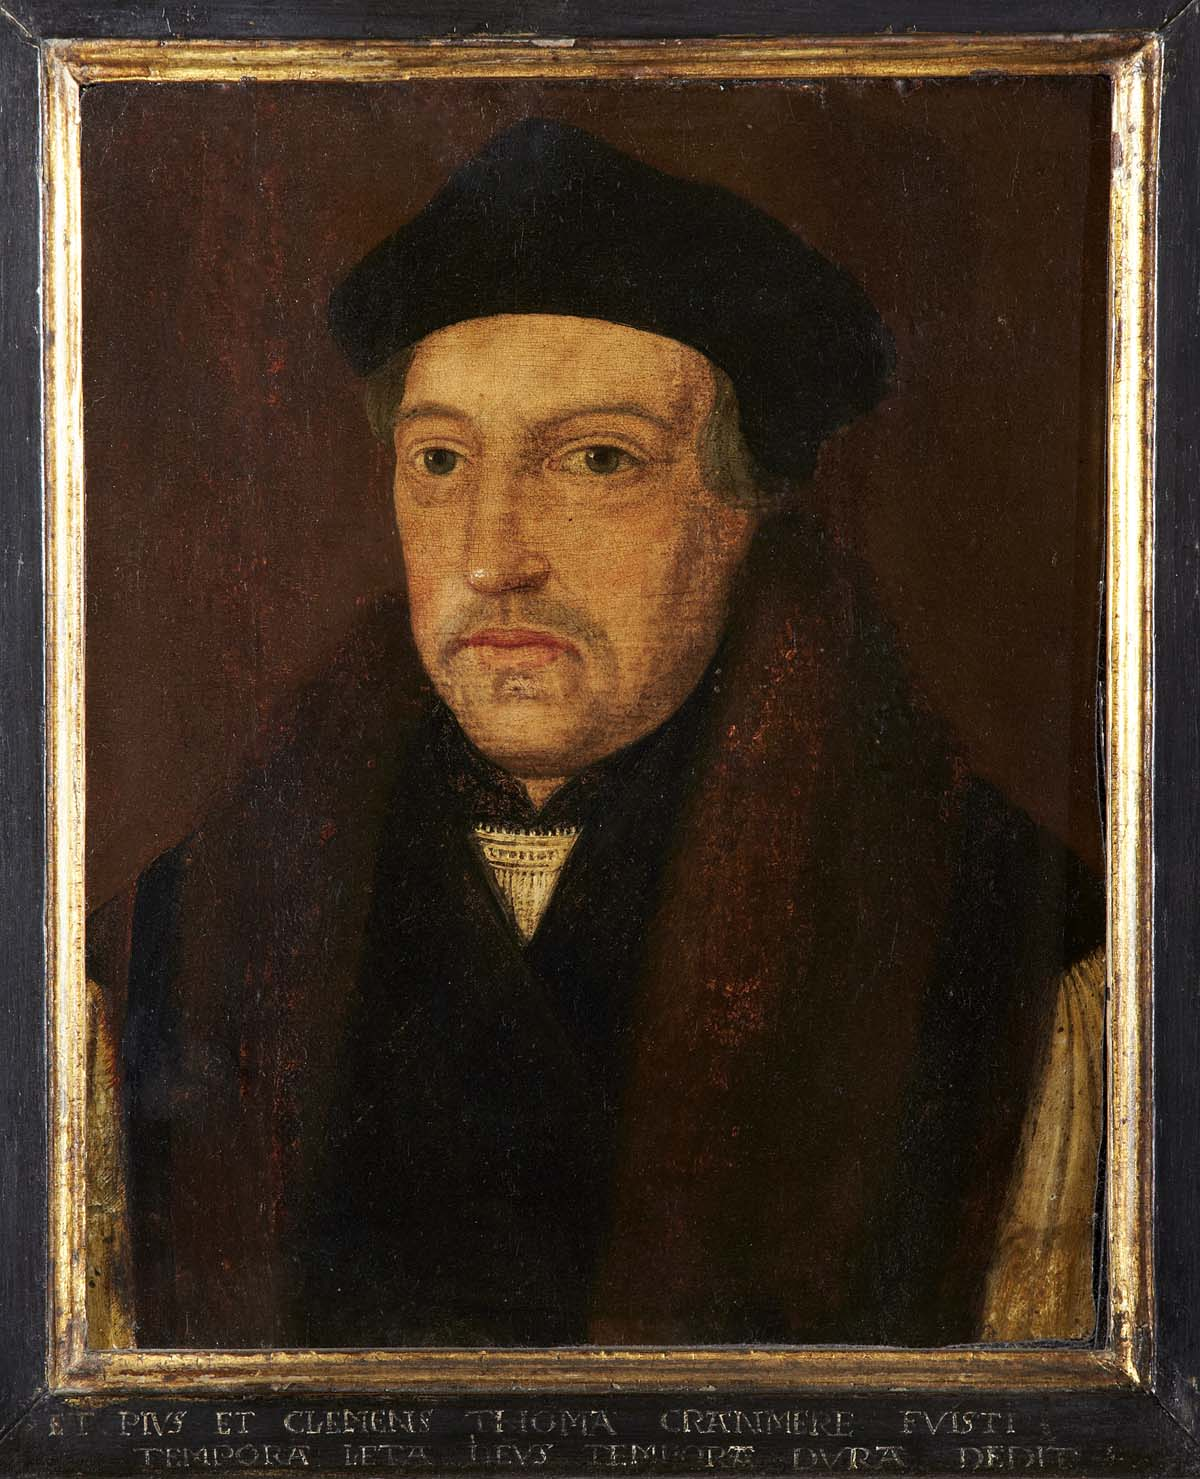 a Tudor portrait of Thomas Cranmer in dark robes and black hat